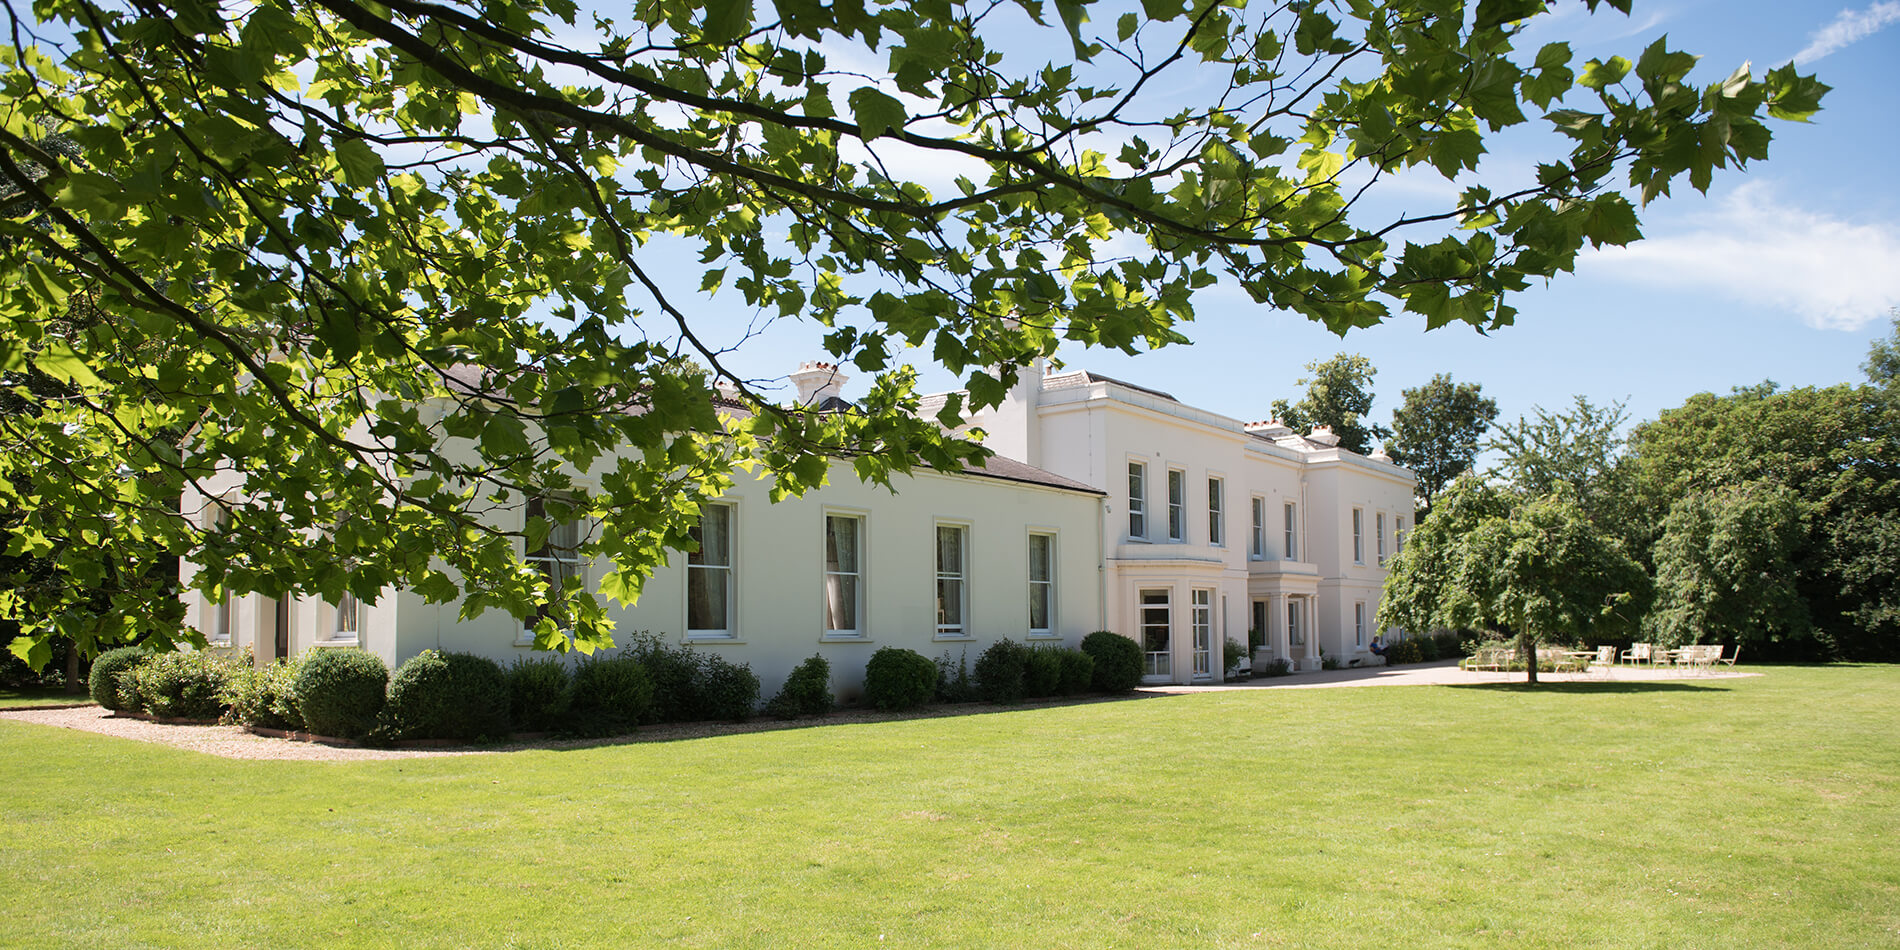 Find out what to expect from a luxury wedding venue – Morden Hall wedding venue in London